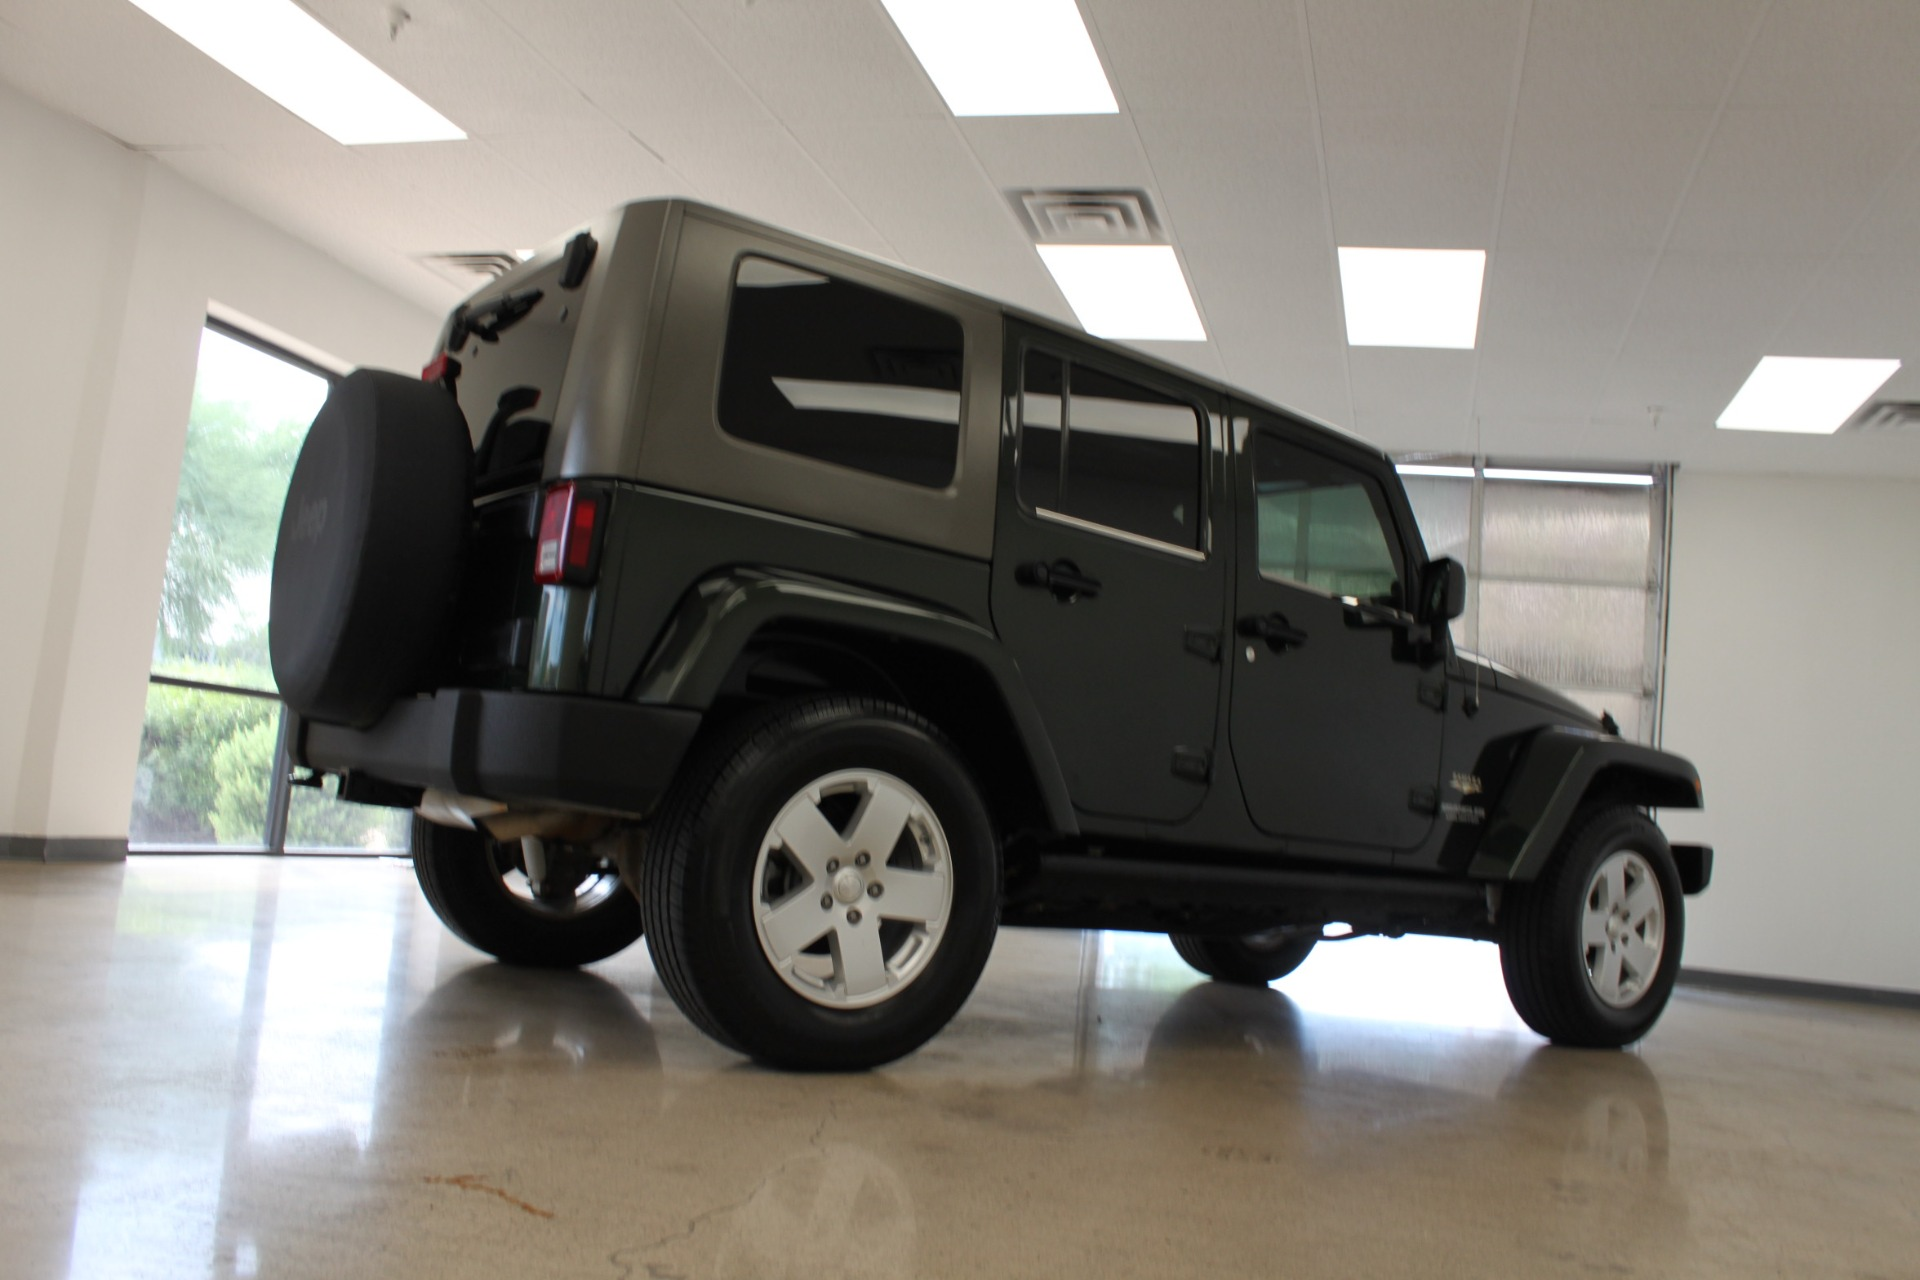 Used-2010-Jeep-Wrangler-Unlimited-Sahara-4X4-Dodge